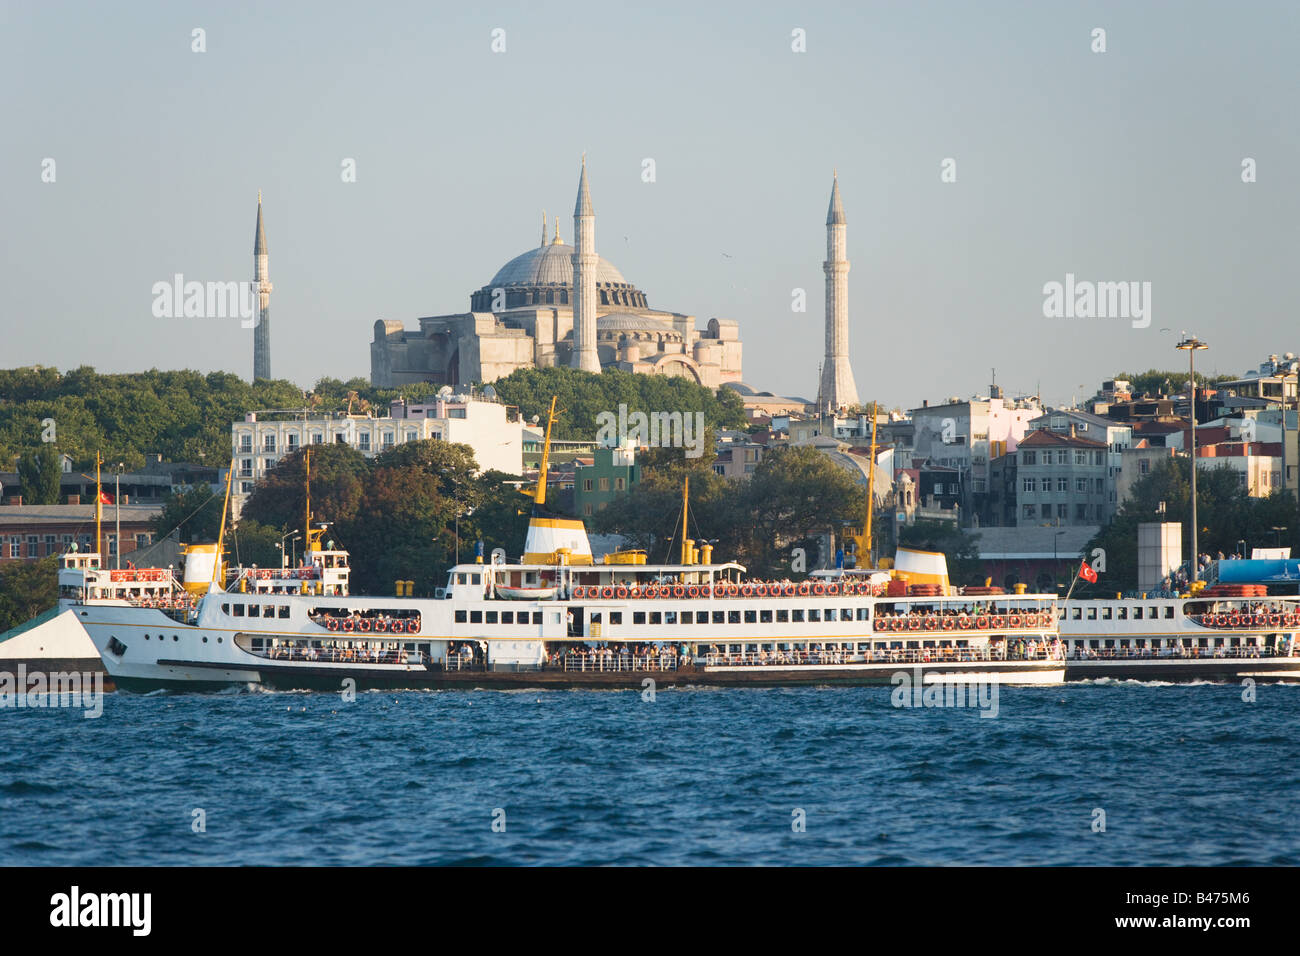 Boat on golden horn and hagia sofia - Stock Image